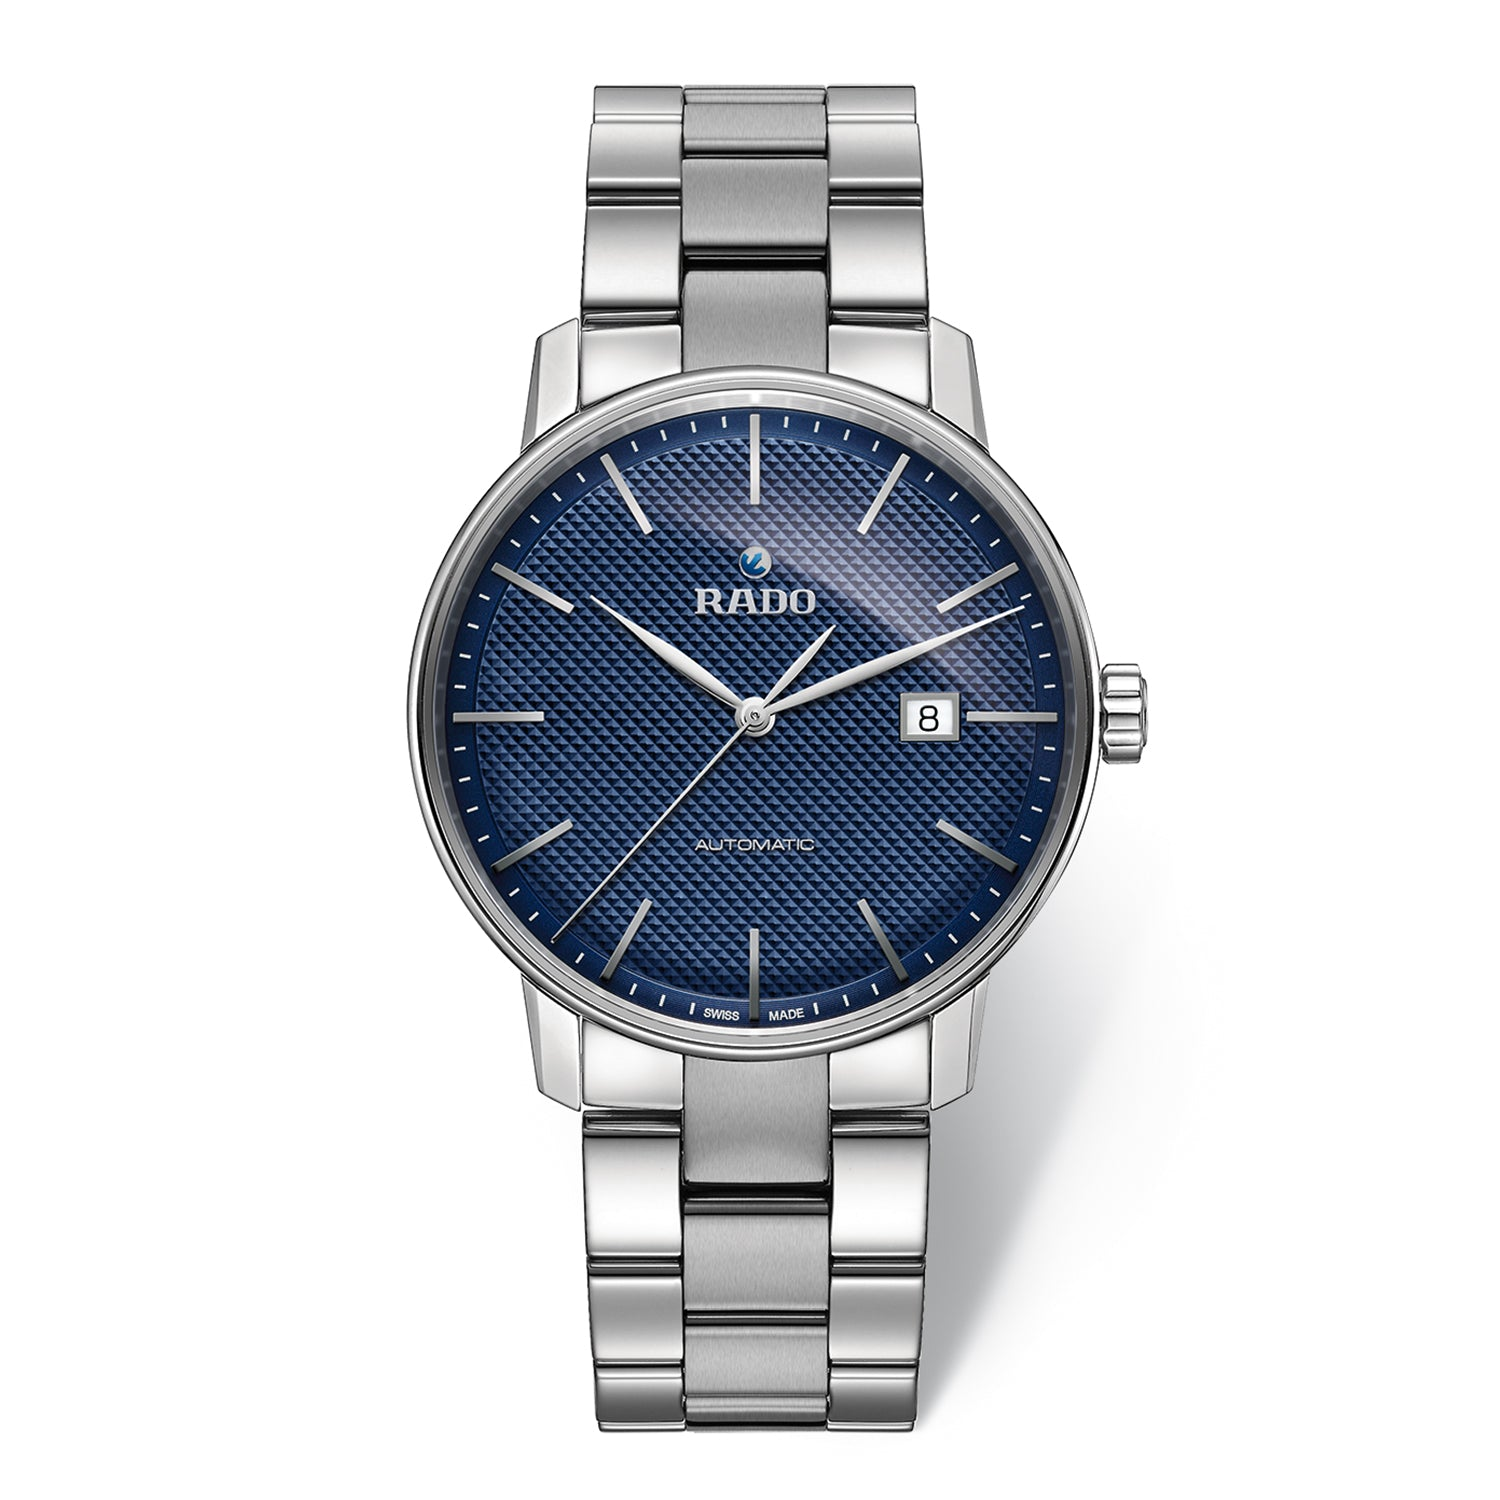 Rado Coupole Classic XL watch with 3-Link stainless steel bracelet, blue dial